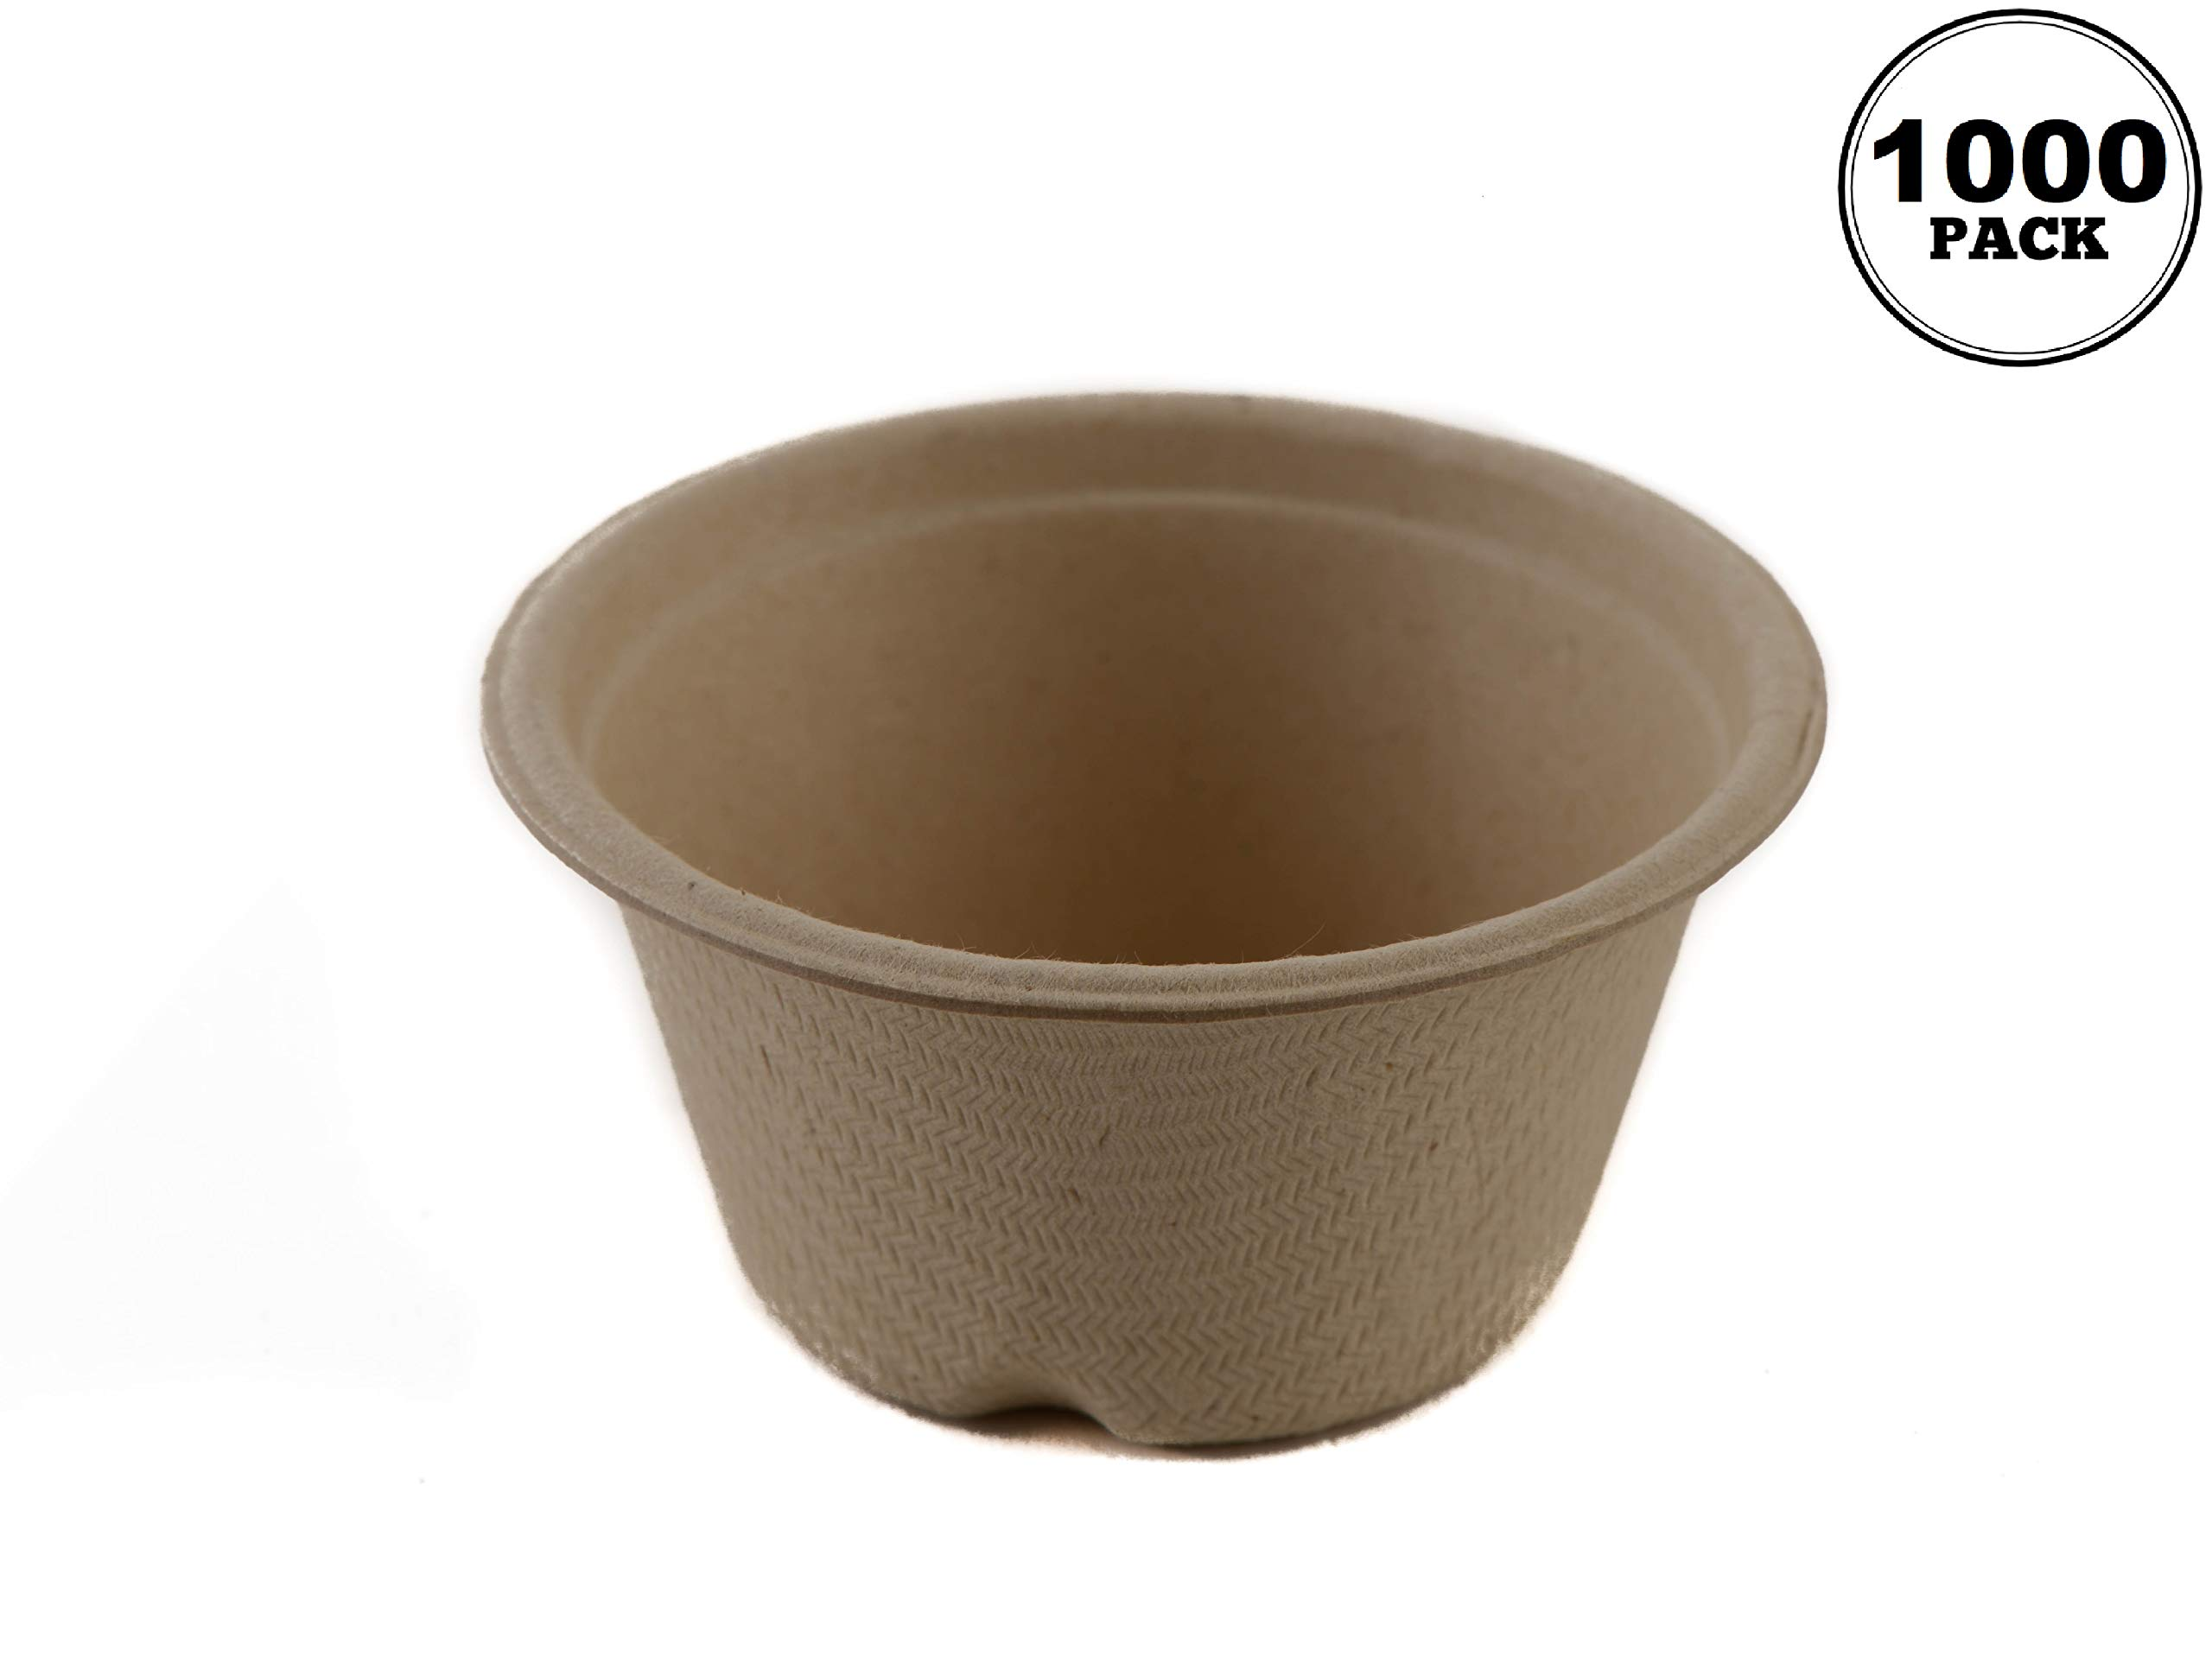 2 Oz Compostable Condiment Souffle Bagasse Cups [1000 Pack] - Portion Cup - Sugarcane, Biodegradable Perfect for Sauces, Samples, Condiments, Slime, Jello Shot, Food Storage, Small Cups by EcoQuality